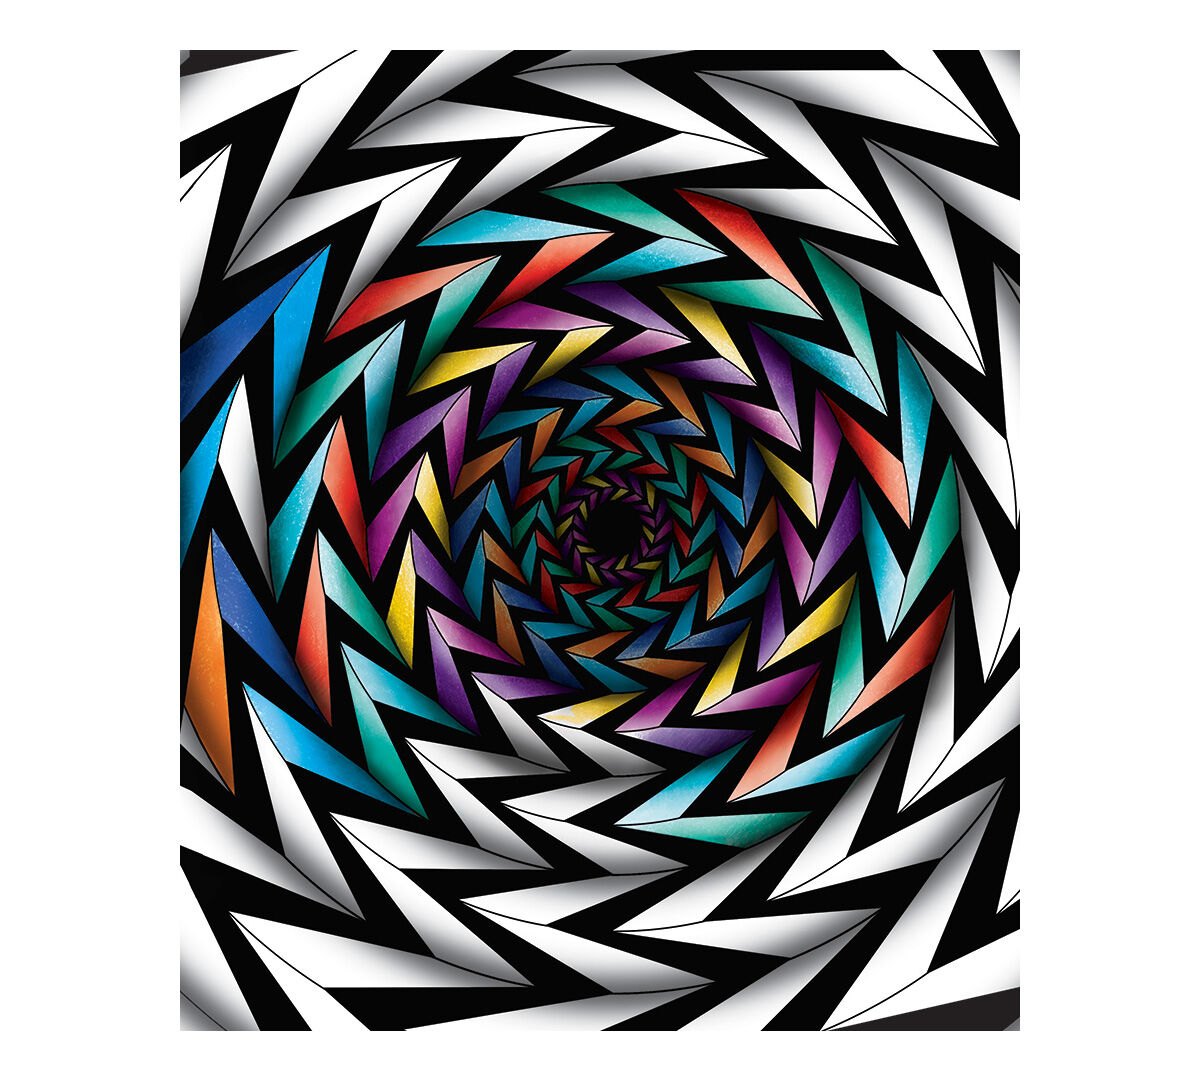 Crayola Art With Edge Optical Illusions 40 Aged Up Coloring Pages